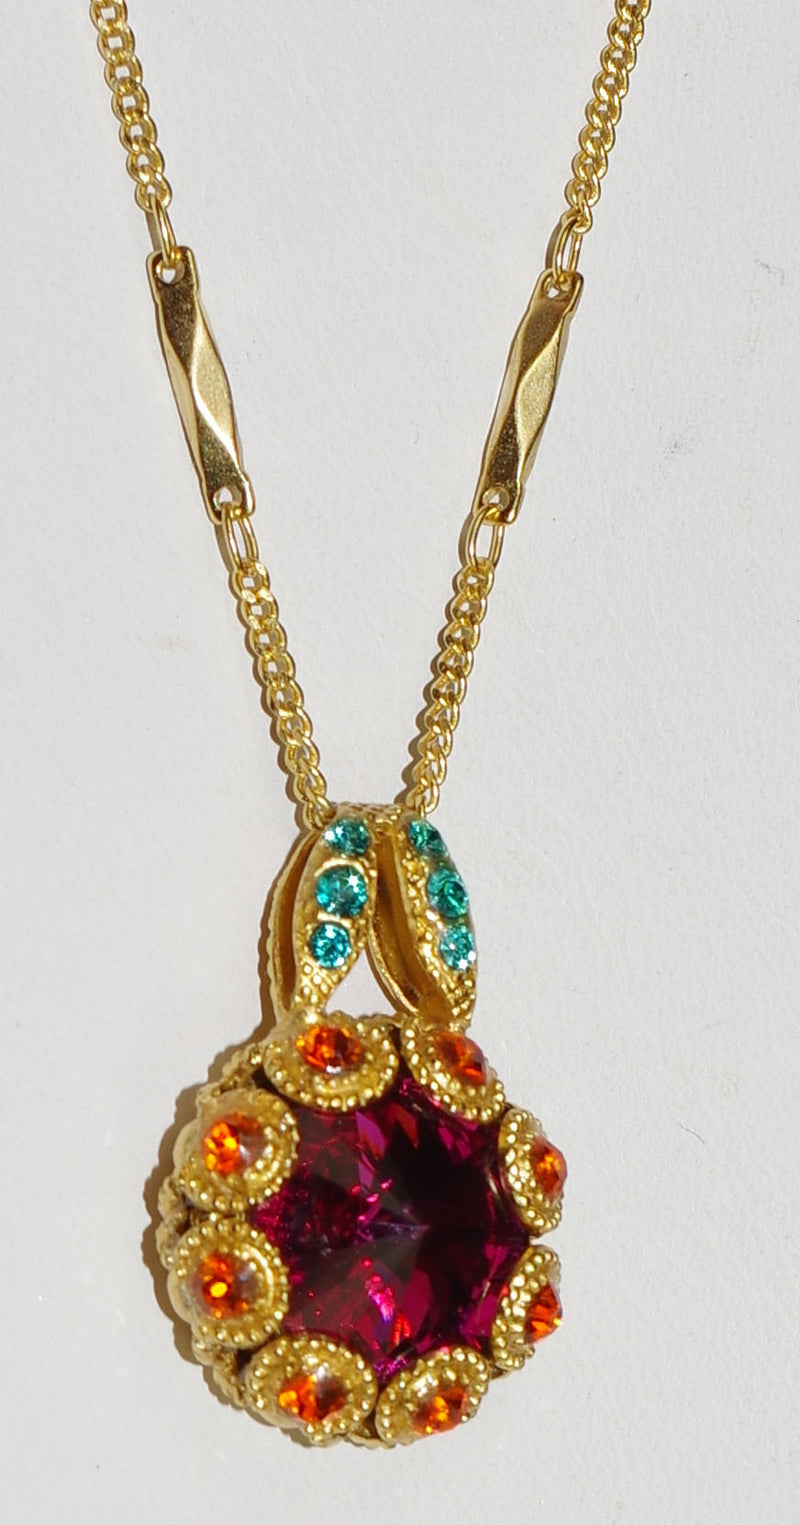 "MARIANA PENDANT MASAI: orange, pink, blue stones in 1"" yellow gold setting, 18"" adjustable chain"